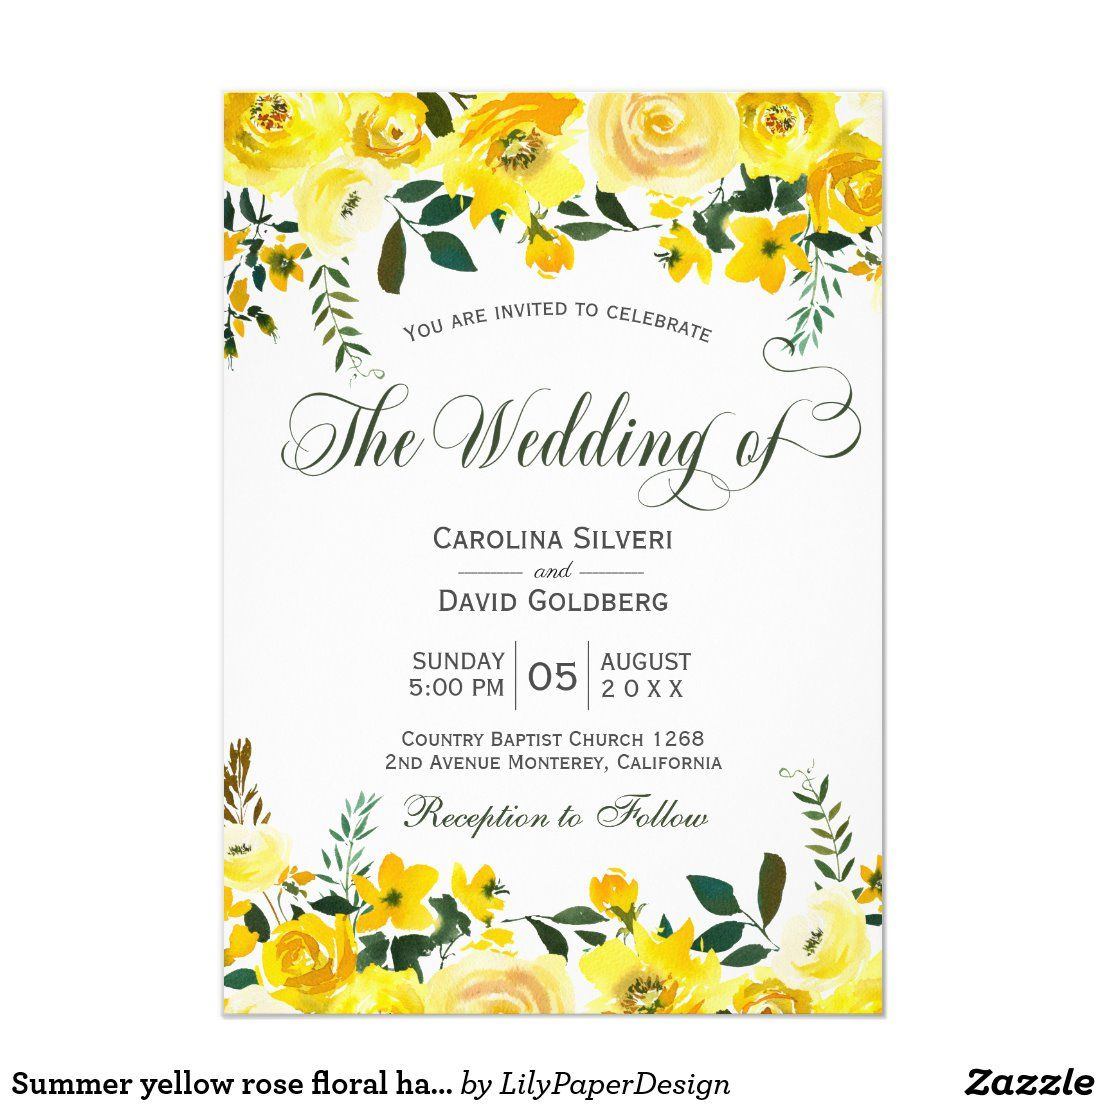 Summer Yellow Rose Floral Hand Lettered Wedding Invitation Zazzle Com In 2020 Hand Lettered Wedding Invitations Hand Lettered Wedding Yellow Wedding Invitations